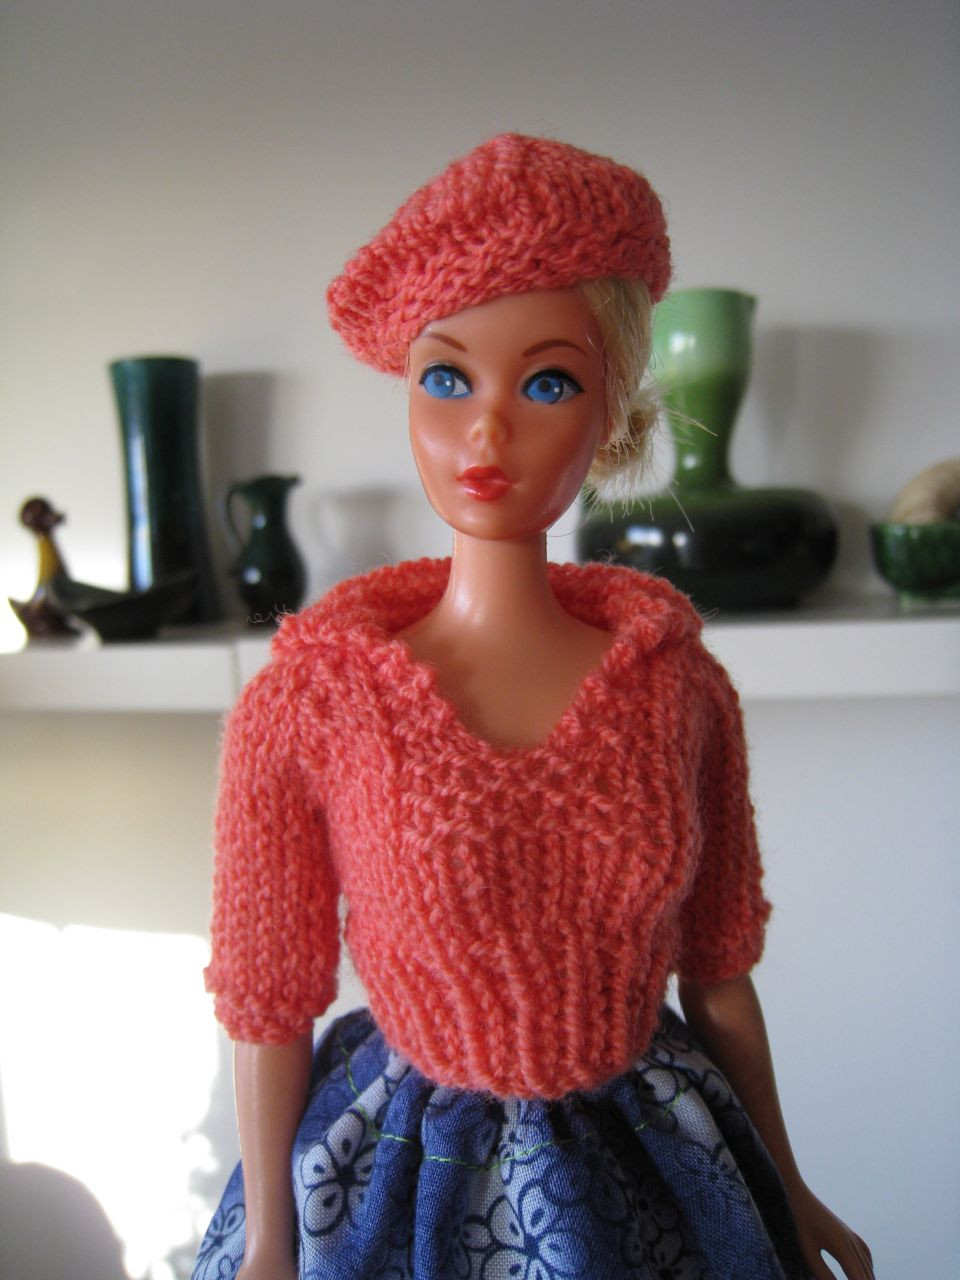 Beautiful Best Barbie Knits New Pullover with Sailor Collar Barbie Doll Patterns Of Superb 40 Pics Barbie Doll Patterns